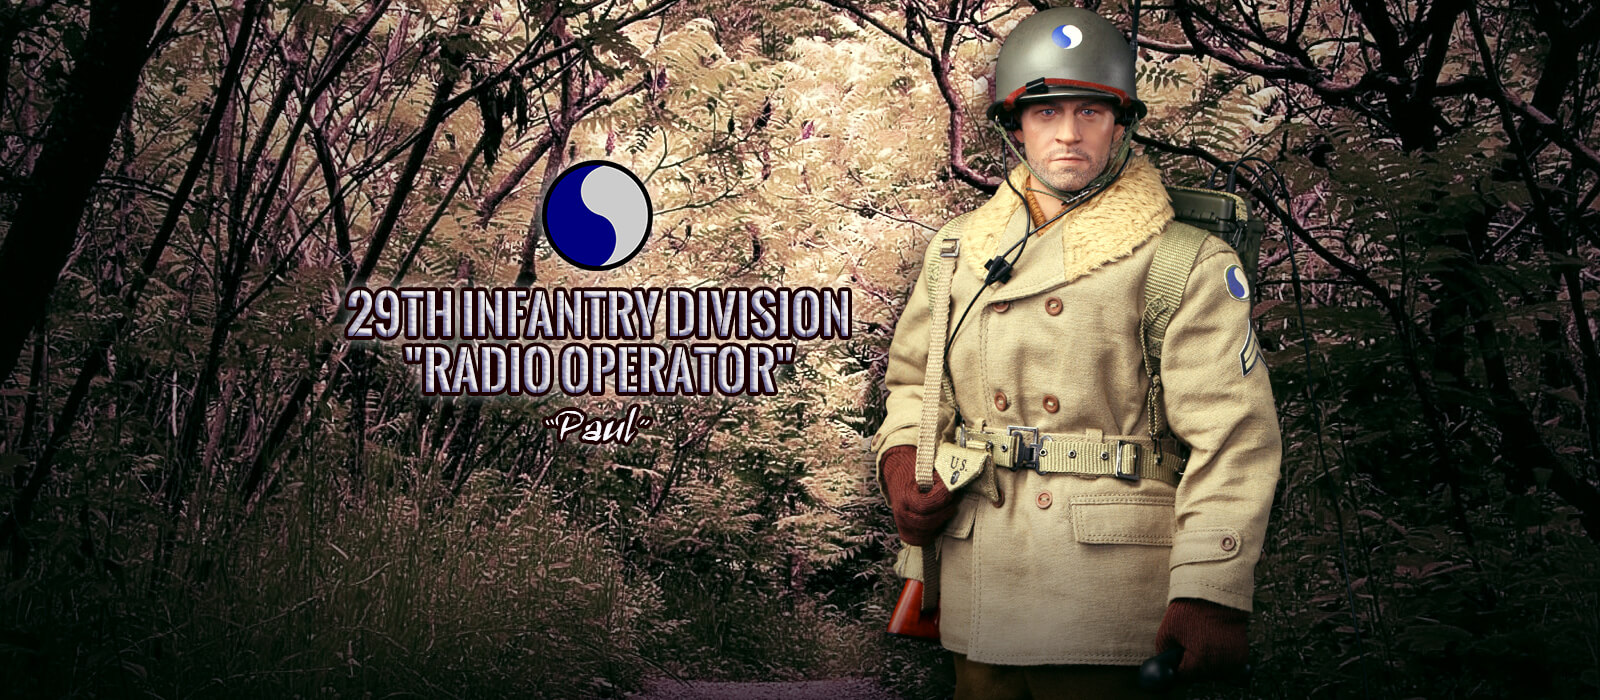 A80115 29th Infantry Division Radio Operator Paul banner